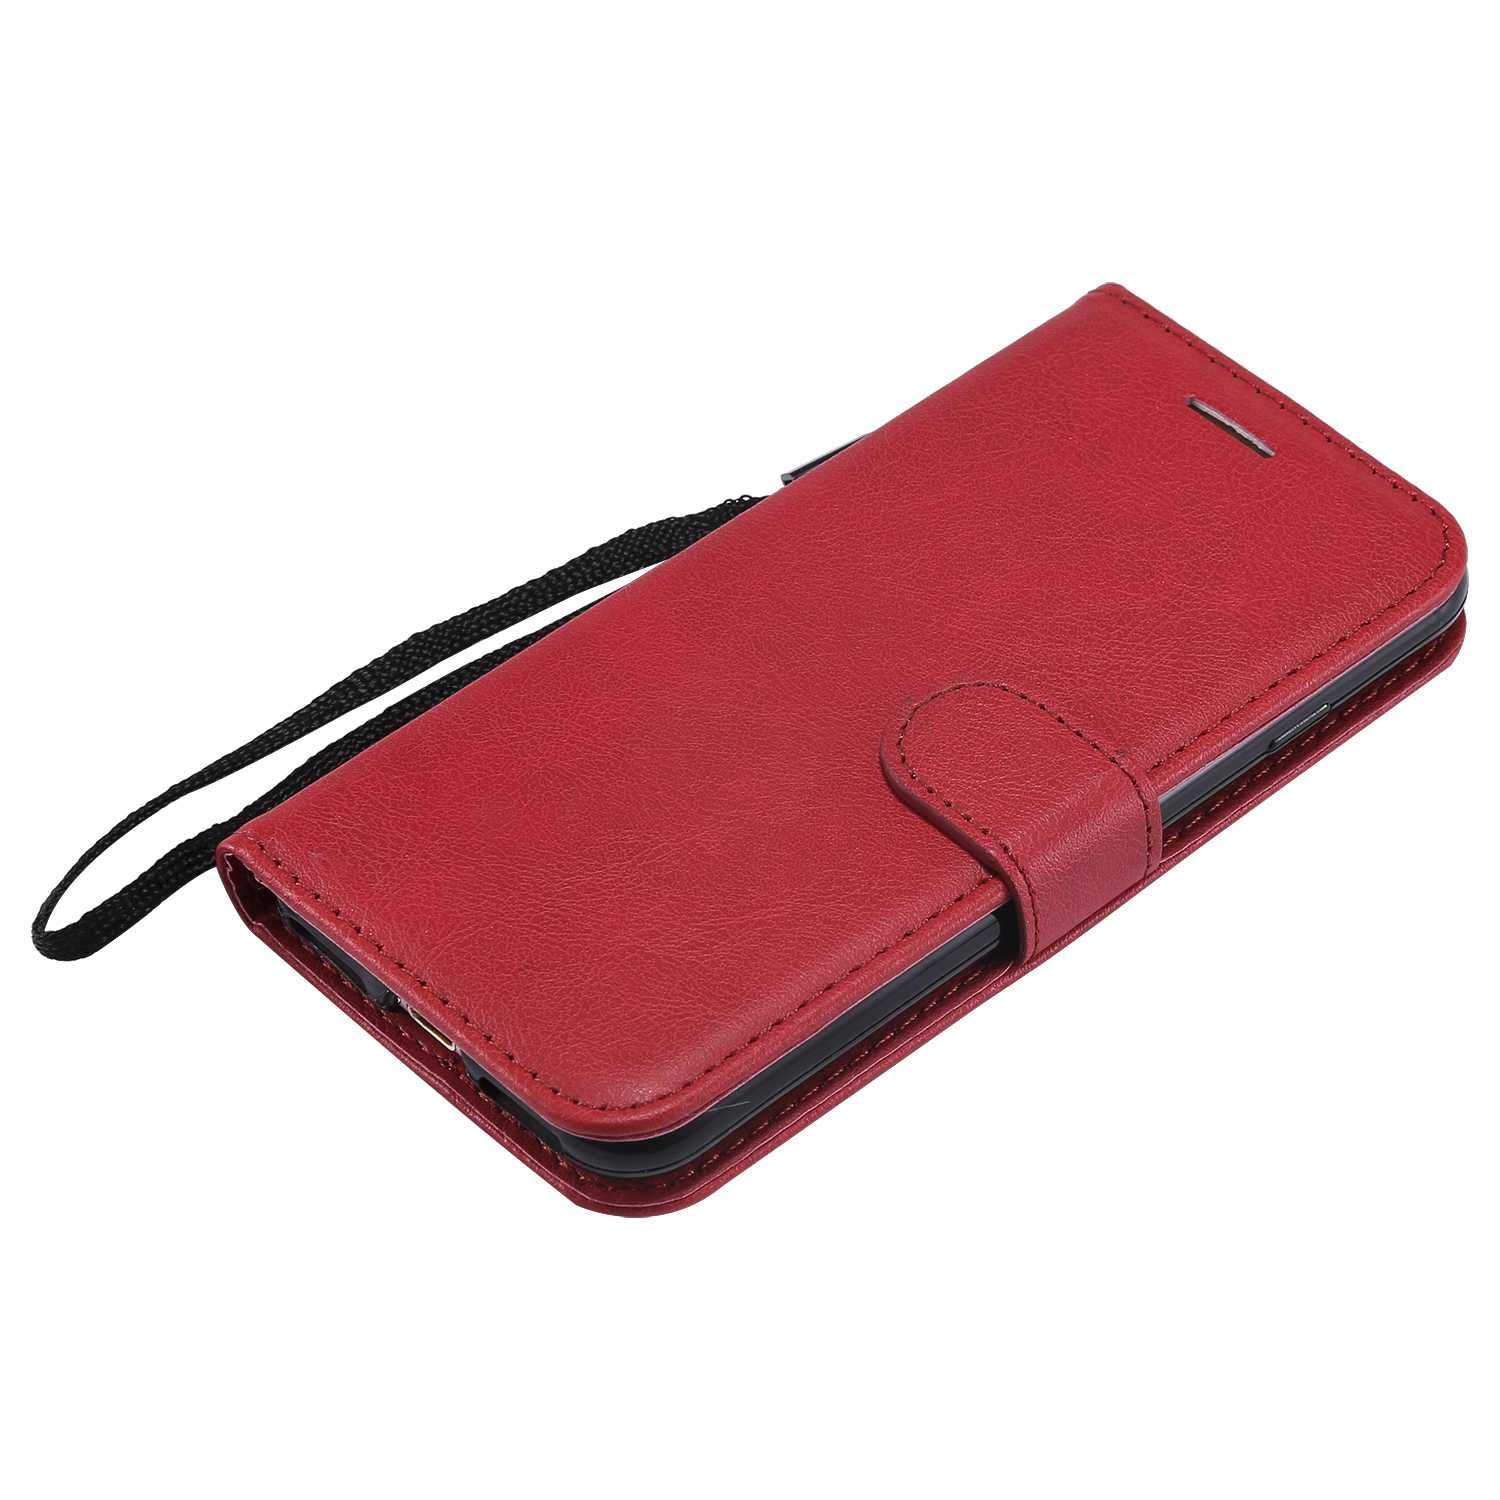 iPhone 7/8 Case, The Grafu Shockproof Leather Wallet Flip Case with [Card Slots] [Wrist Strap] Stand Function Cover for Apple iPhone 7 / iPhone 8, Red by The Grafu (Image #3)